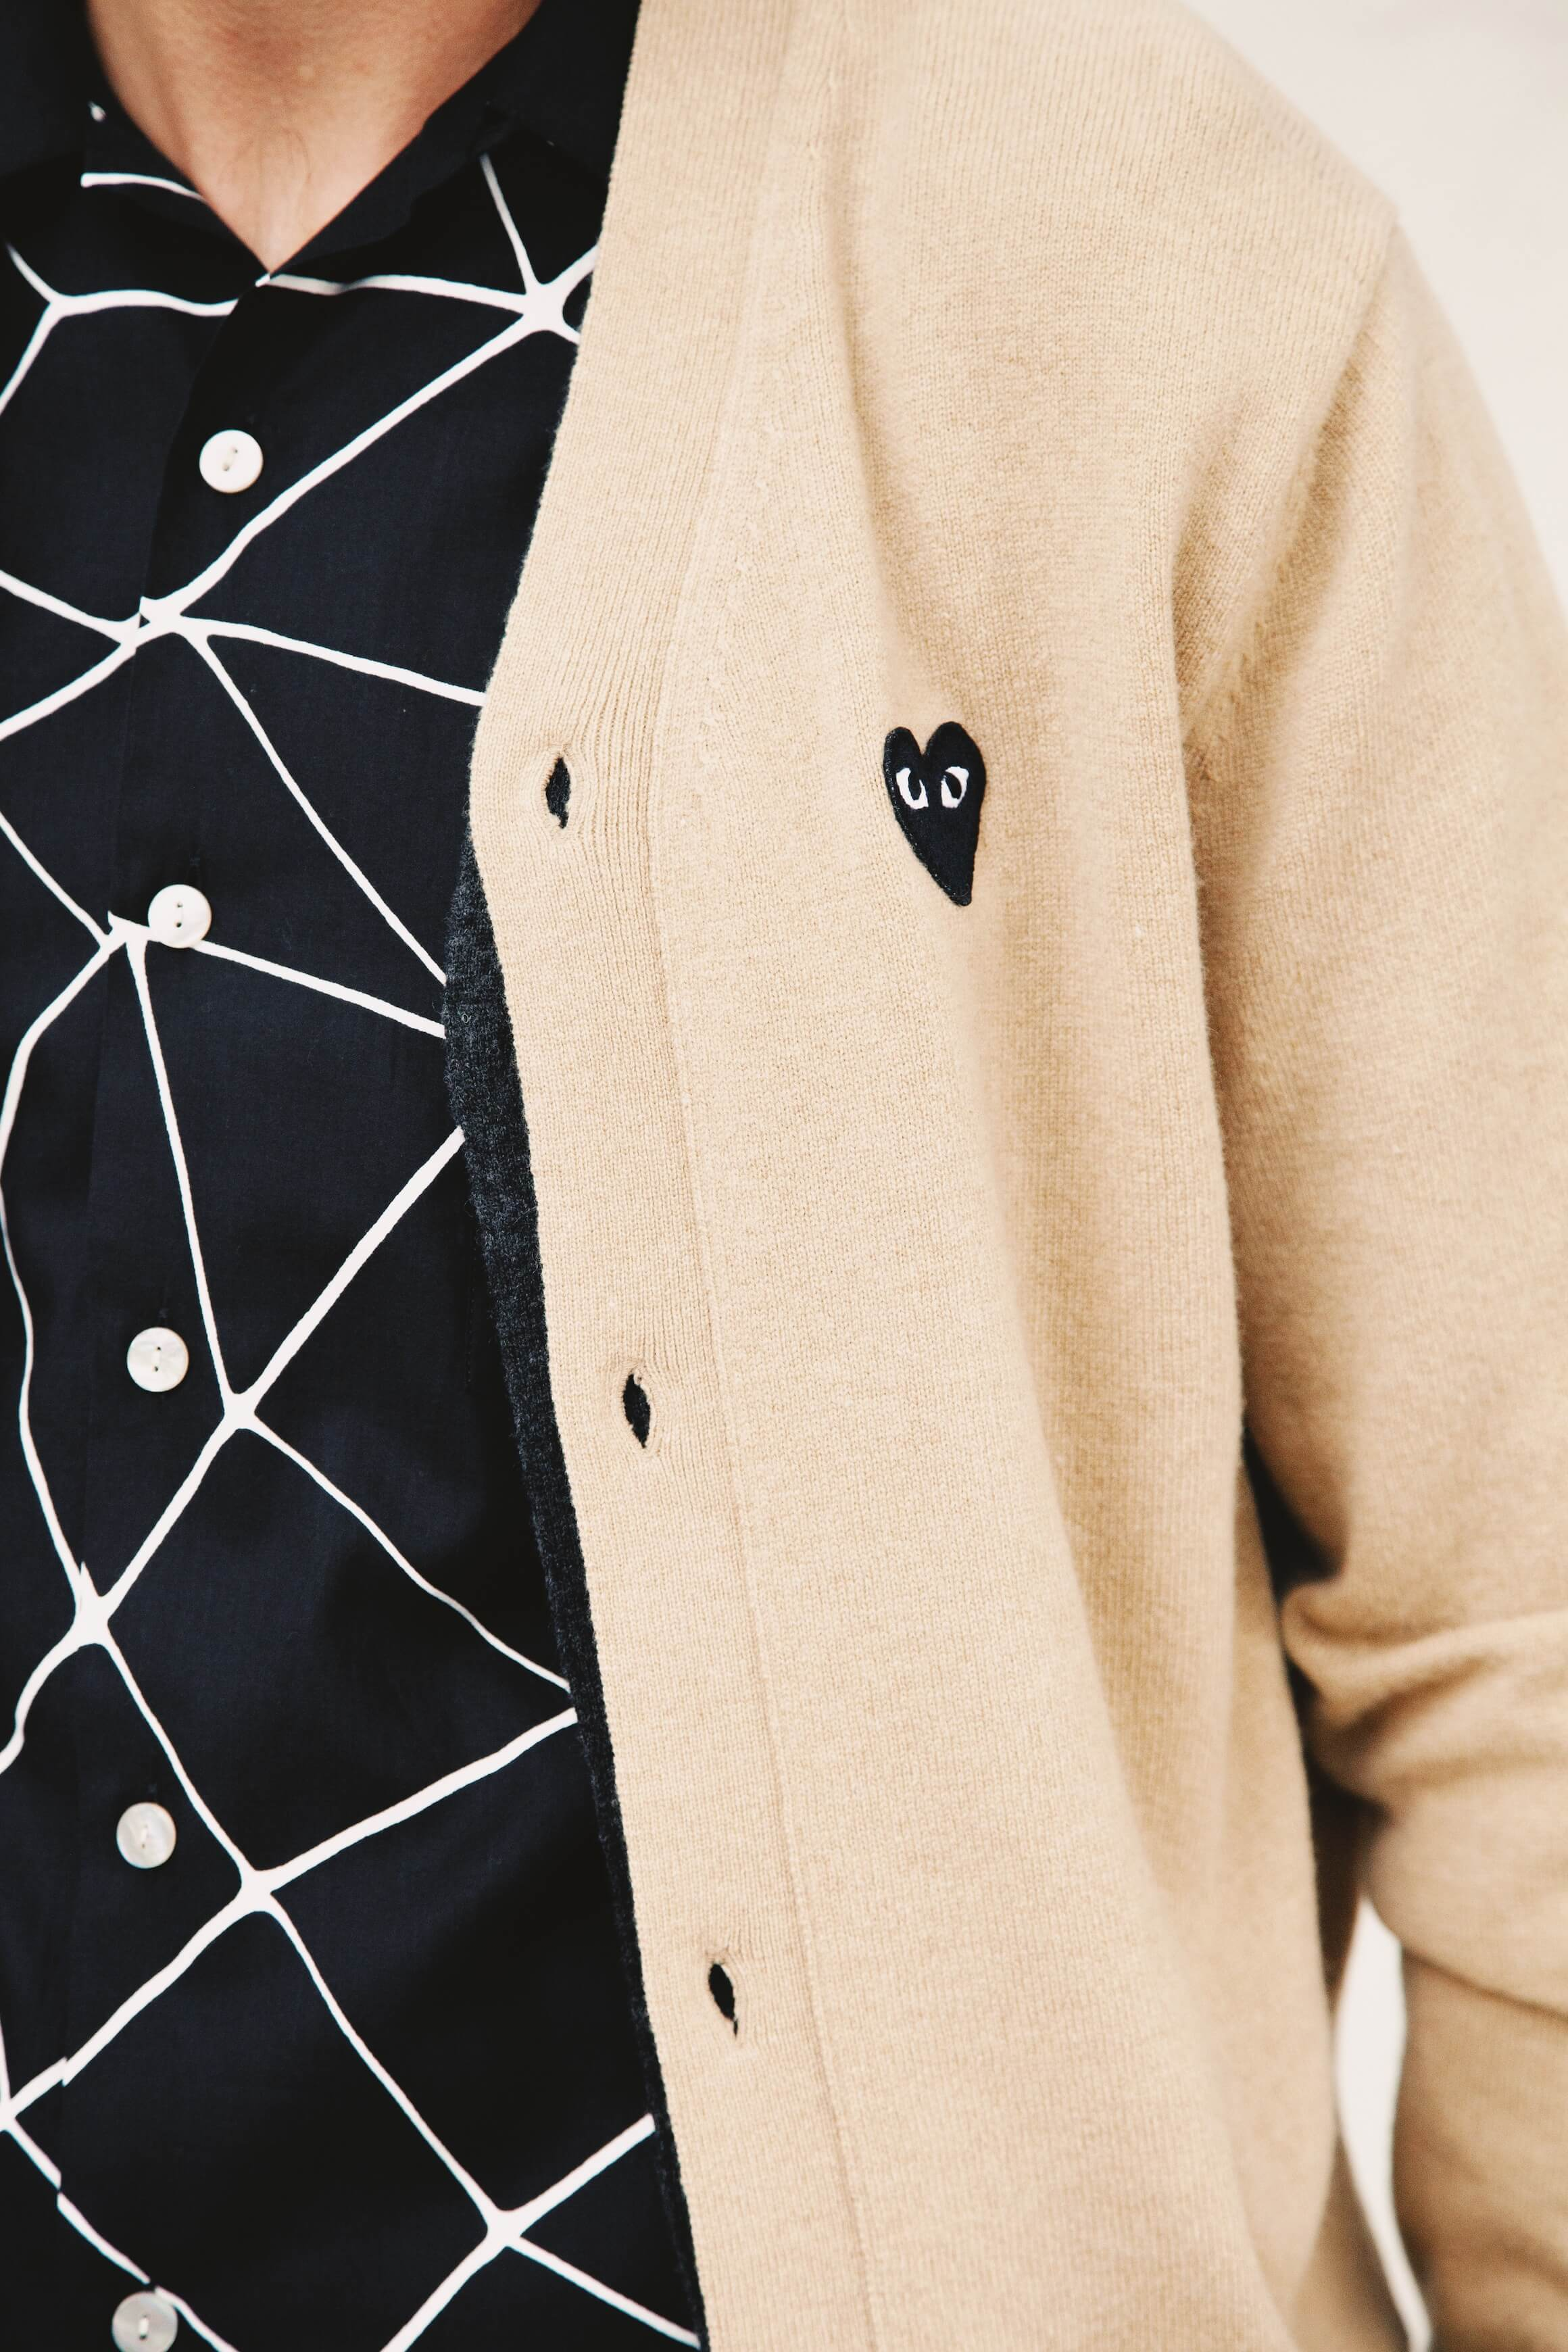 comme des garcons play black heart cardigan, levis vintage clothing web shirt on body